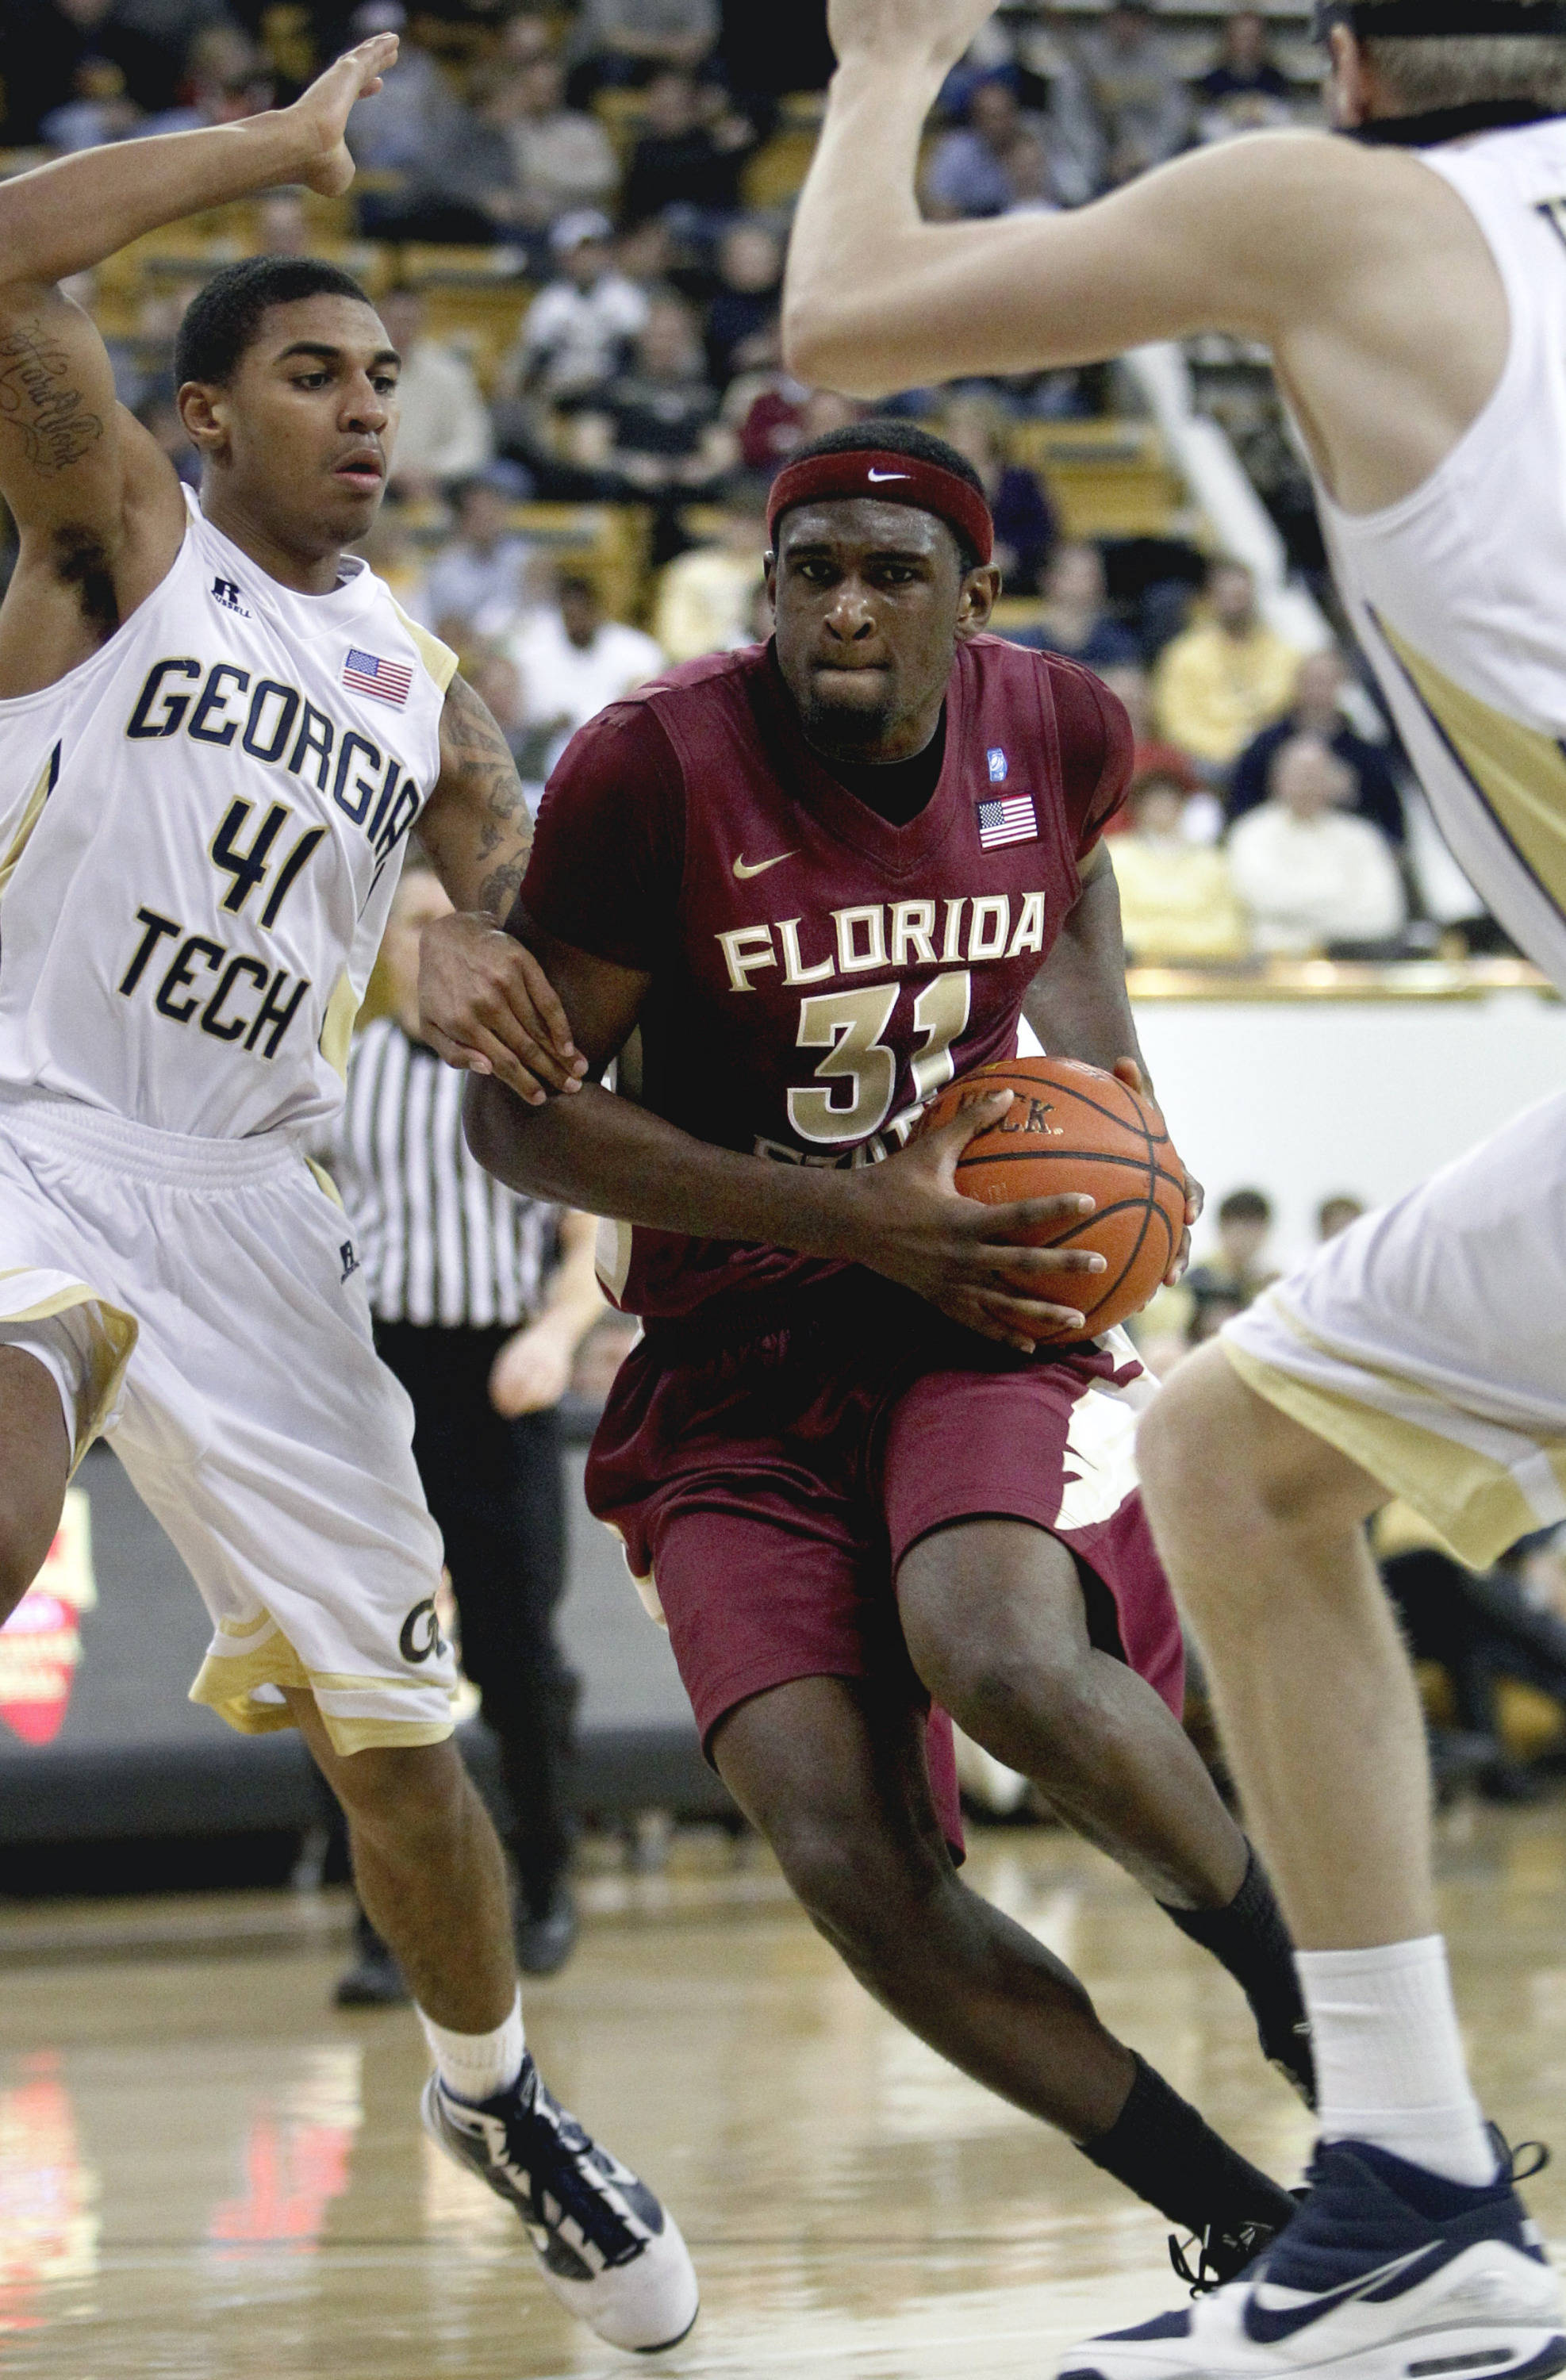 Florida State forward Chris Singleton (31) dribbles to the basket against Georgia Tech guard Glen Rice Jr. (41) during the second half. (AP Photo/David Goldman)